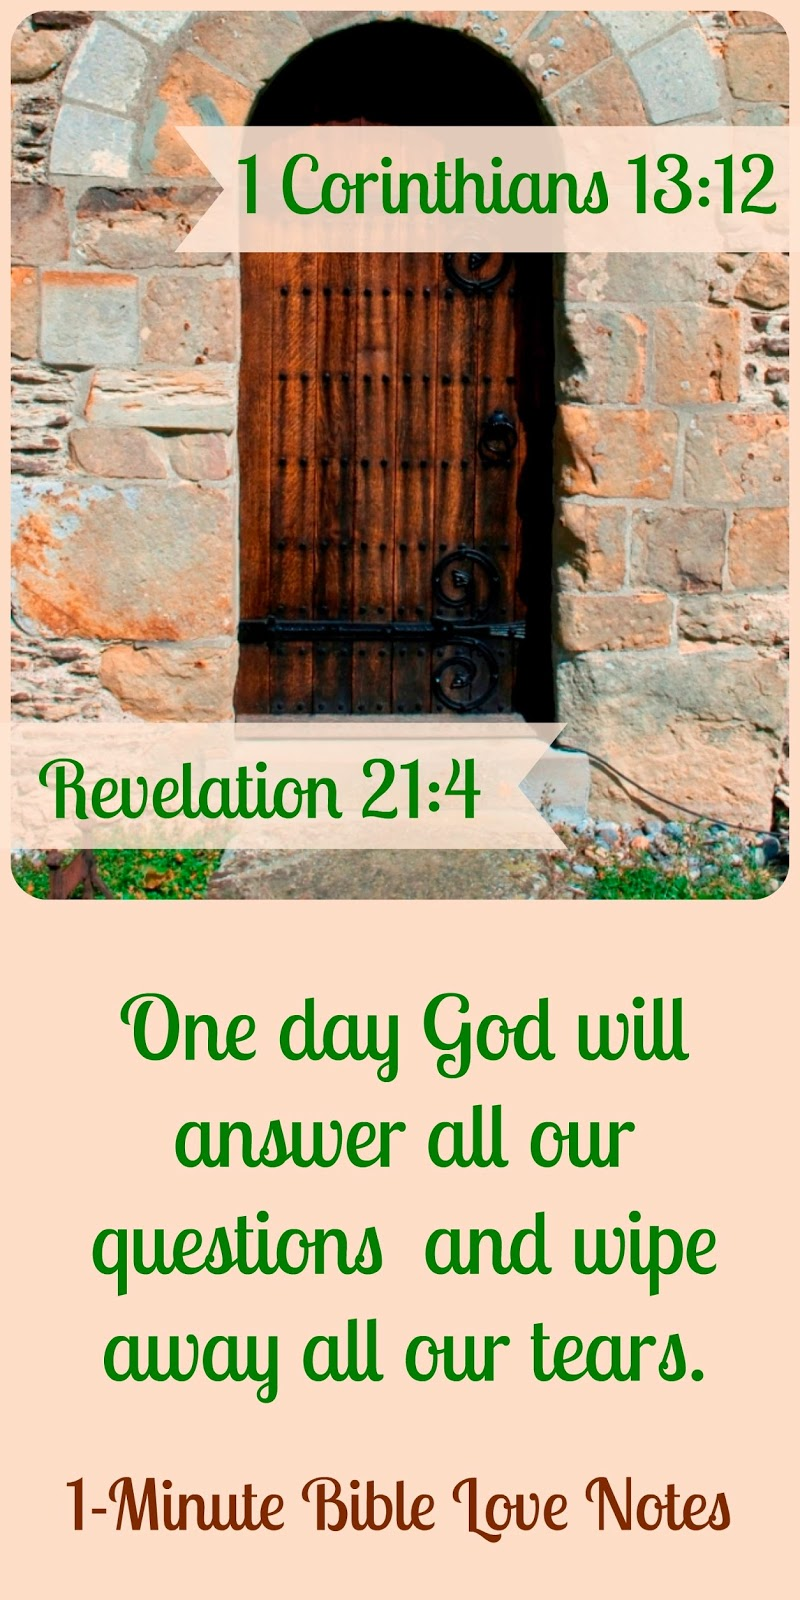 Revelation 21:4, 1 Corinthians 13:12, Proverbs 3:5, God will answer our questions, God will wipe away our tears